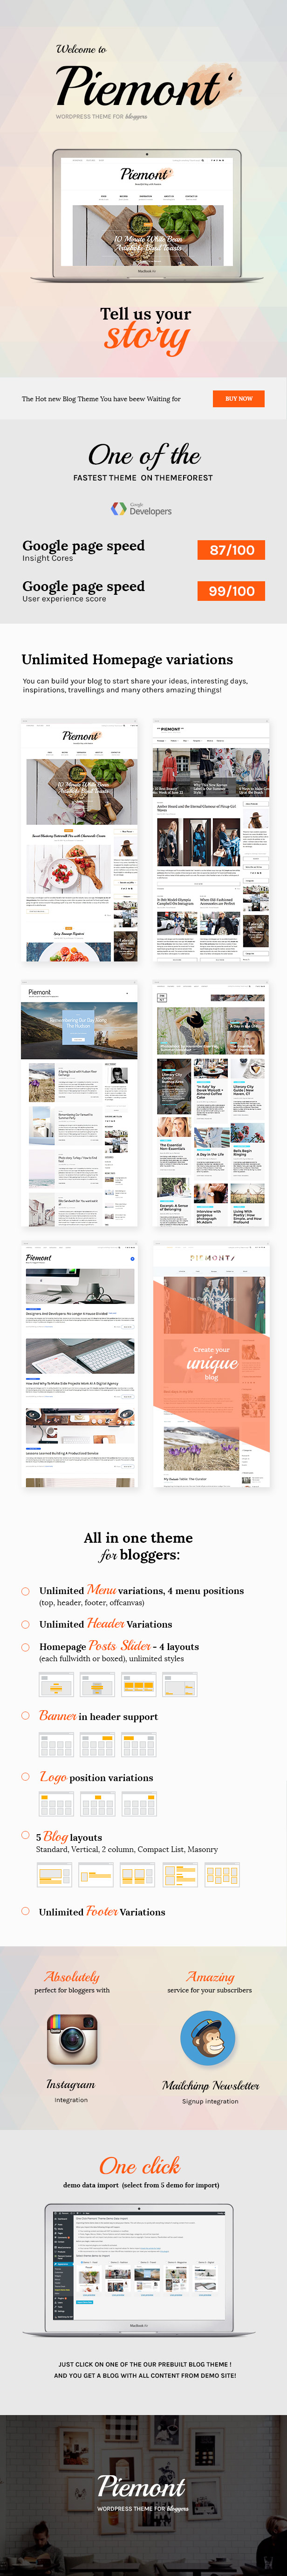 Piemont - Premium Responsive WordPress Blog Theme